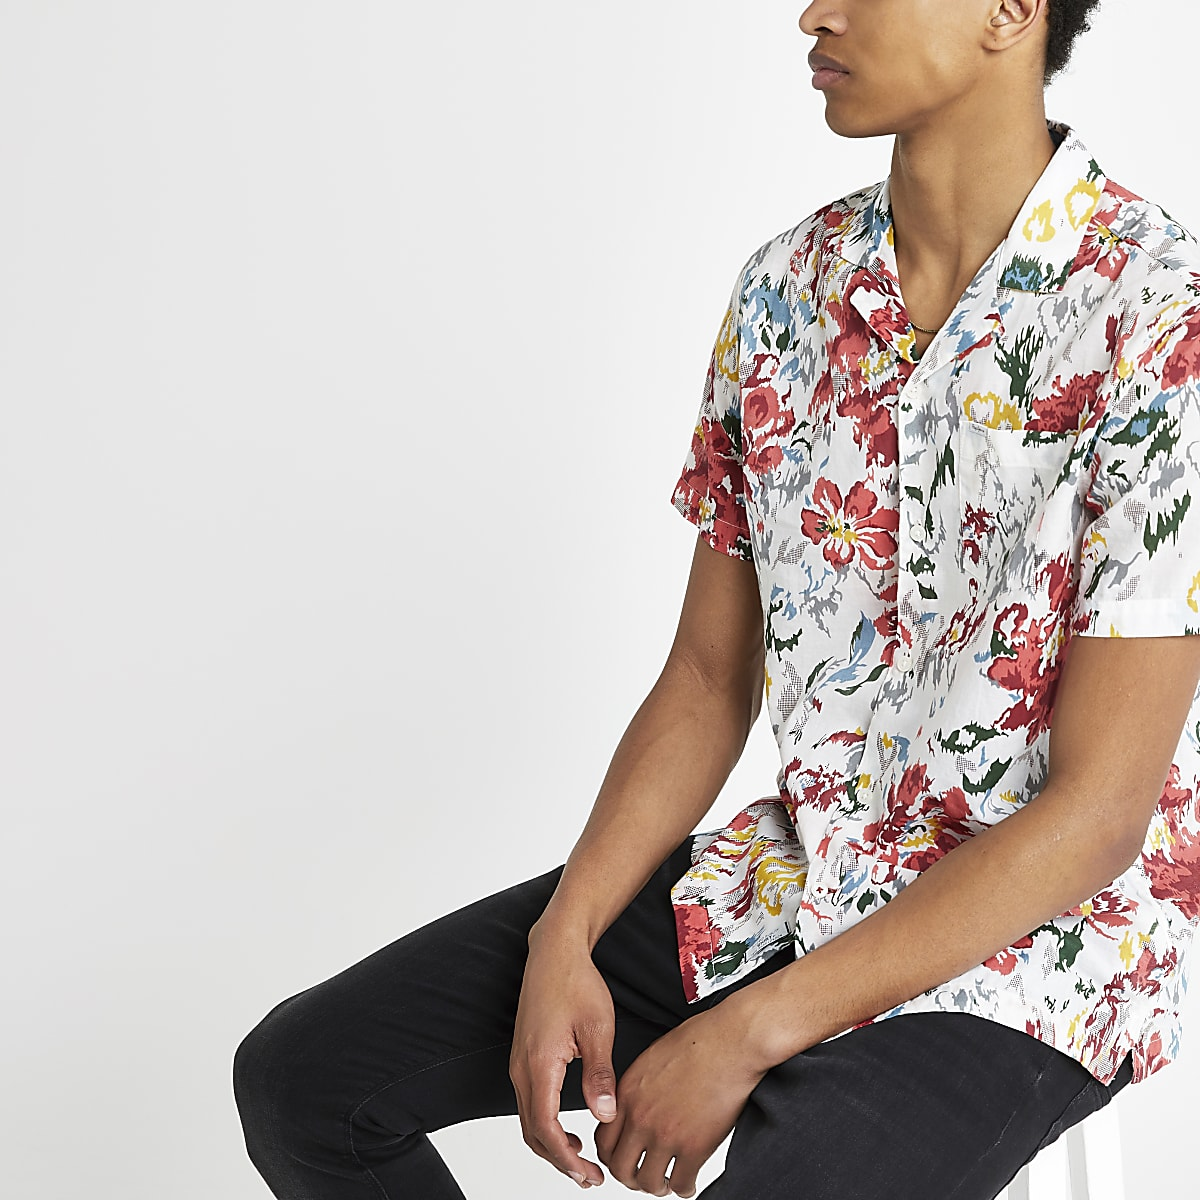 Pepe Jeans – Rotes, bedrucktes Hemd